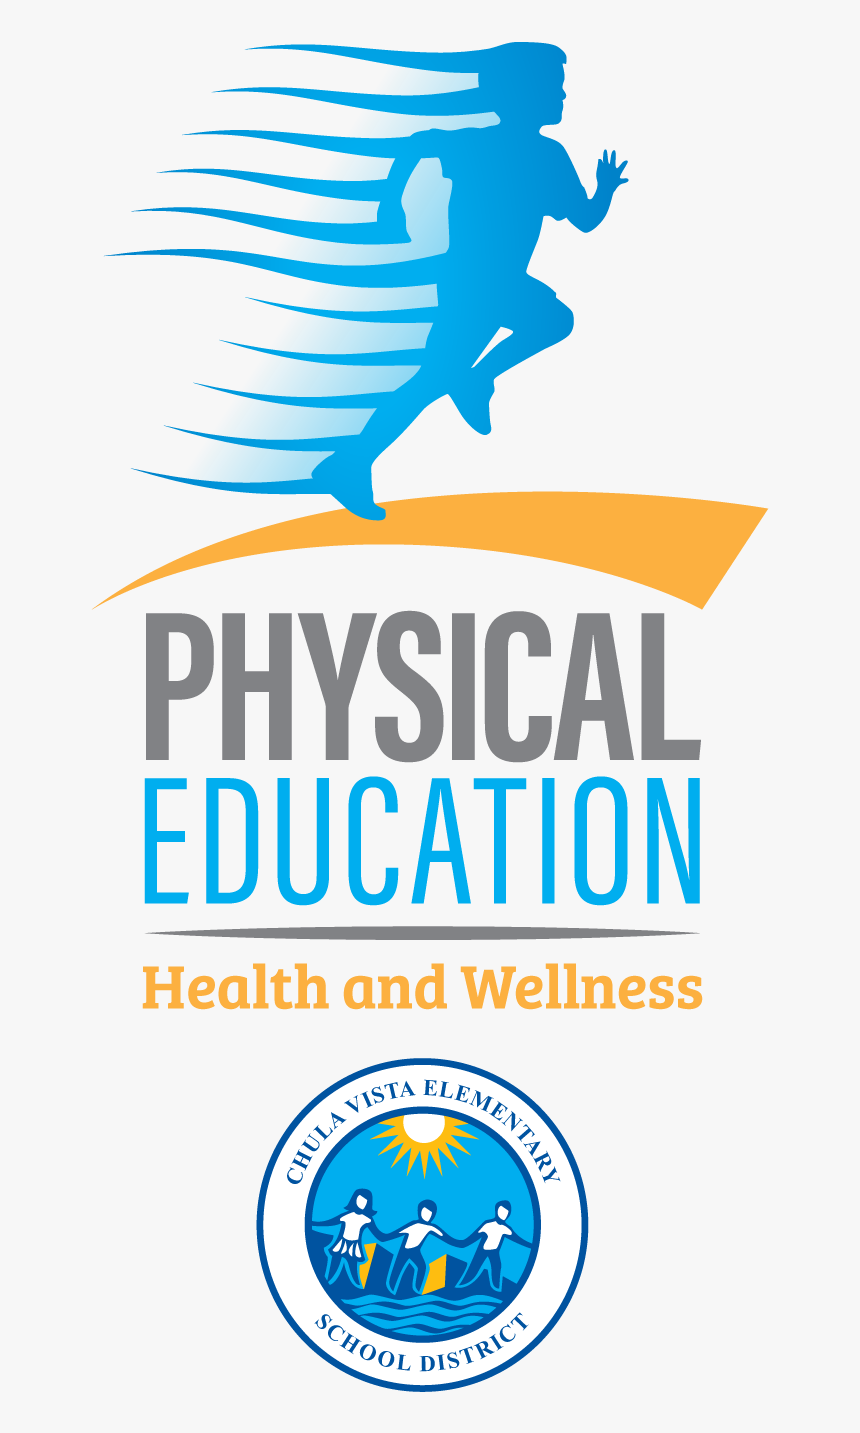 Health And Physical Education Logo Hd Png Download Transparent Png Image Pngitem